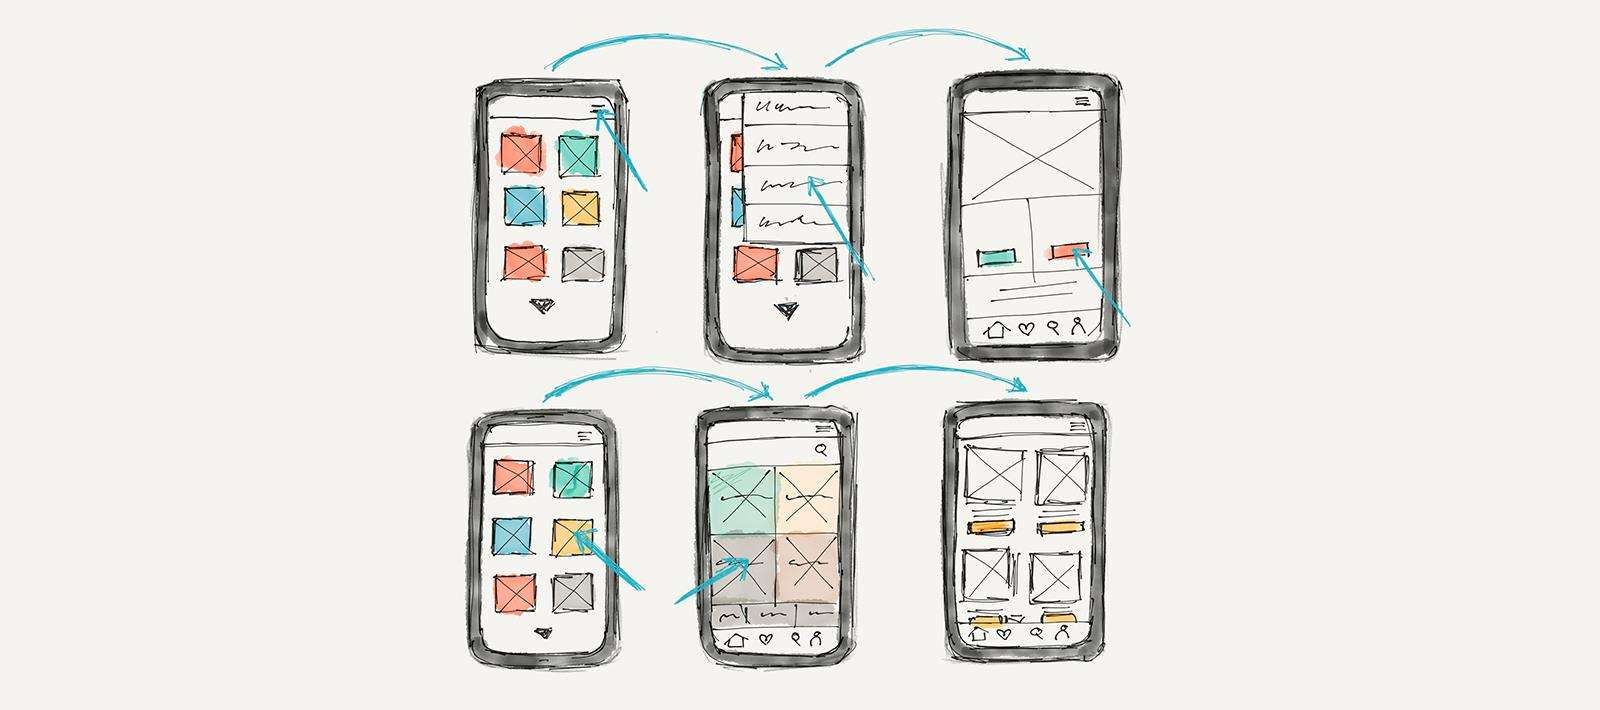 Mobile UX principles